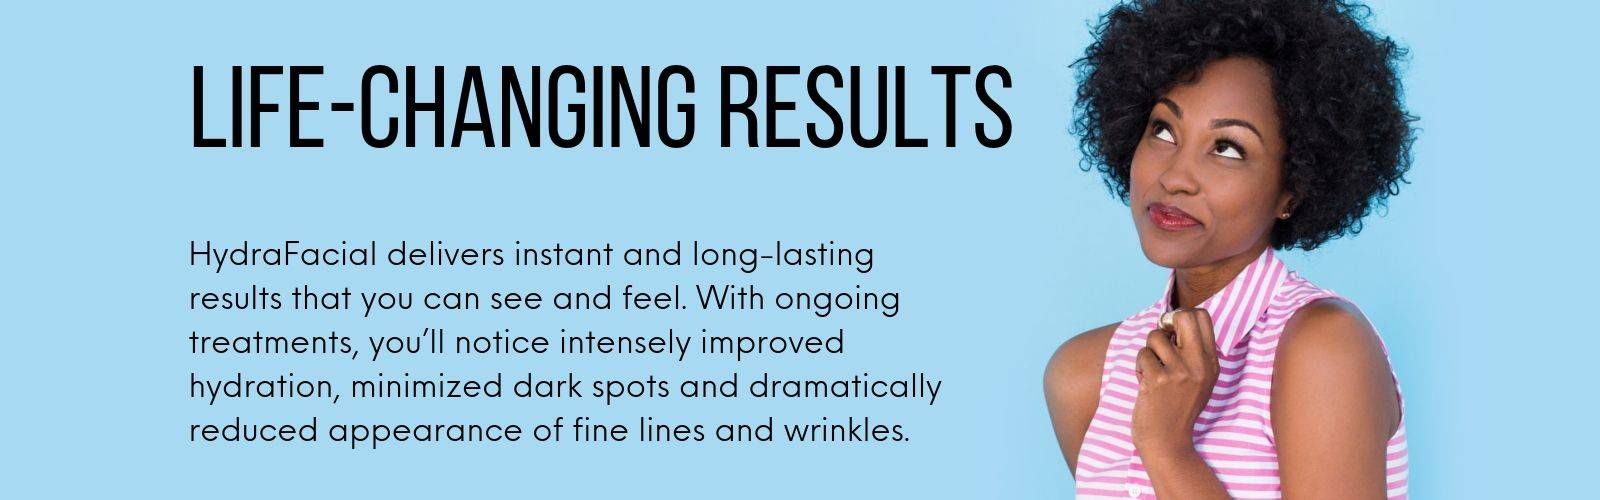 HydraFacial Life Changing Results - Available at Thai-Me Spa in Hot Springs, AR